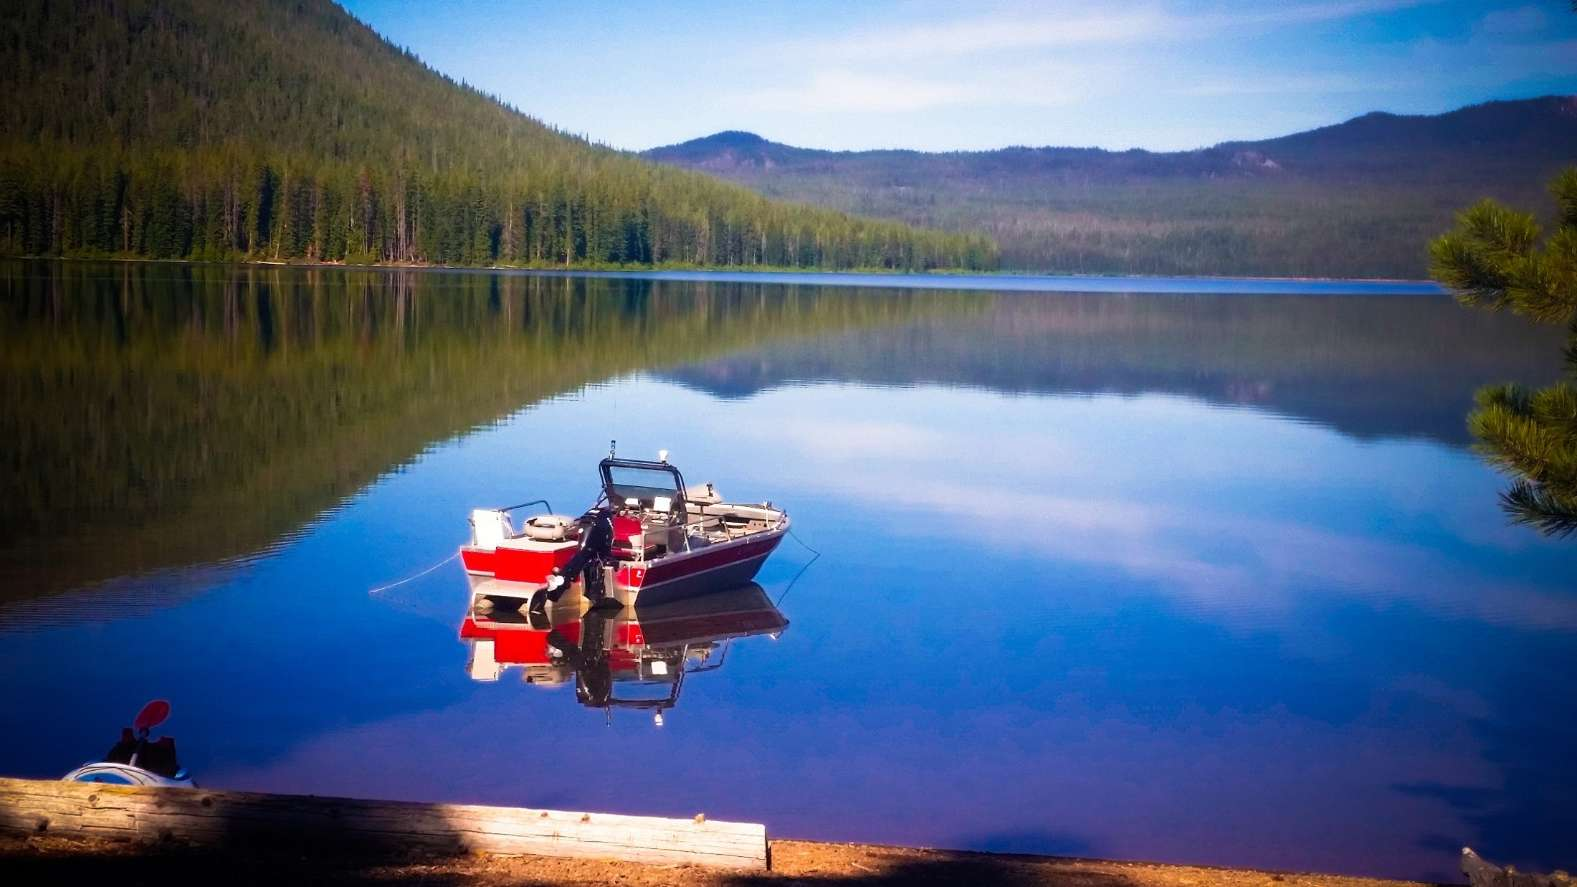 red and white boat in still lake surrounded by forested mountains